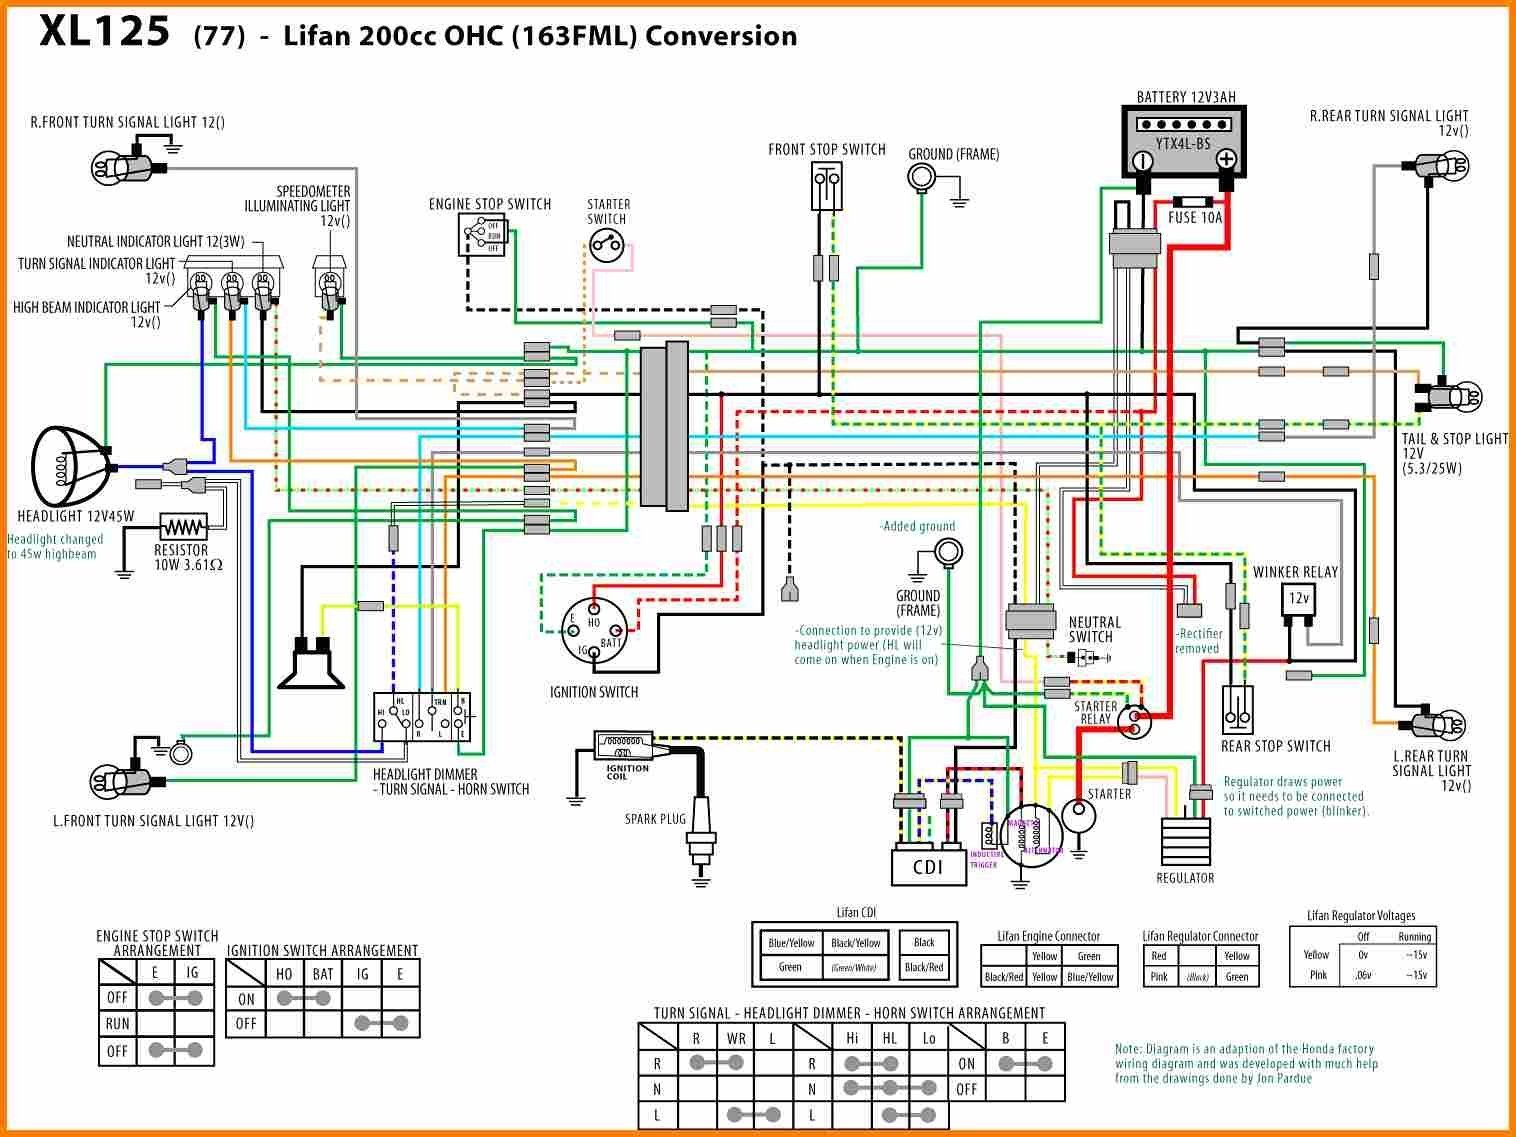 Lifan 110Cc Engine Diagram Lifan 125Cc Wiring Diagram - Wiring pertaining  to Lifan 125 Wiring Di… | Motorcycle wiring, Electrical wiring diagram,  Electrical diagramPinterest